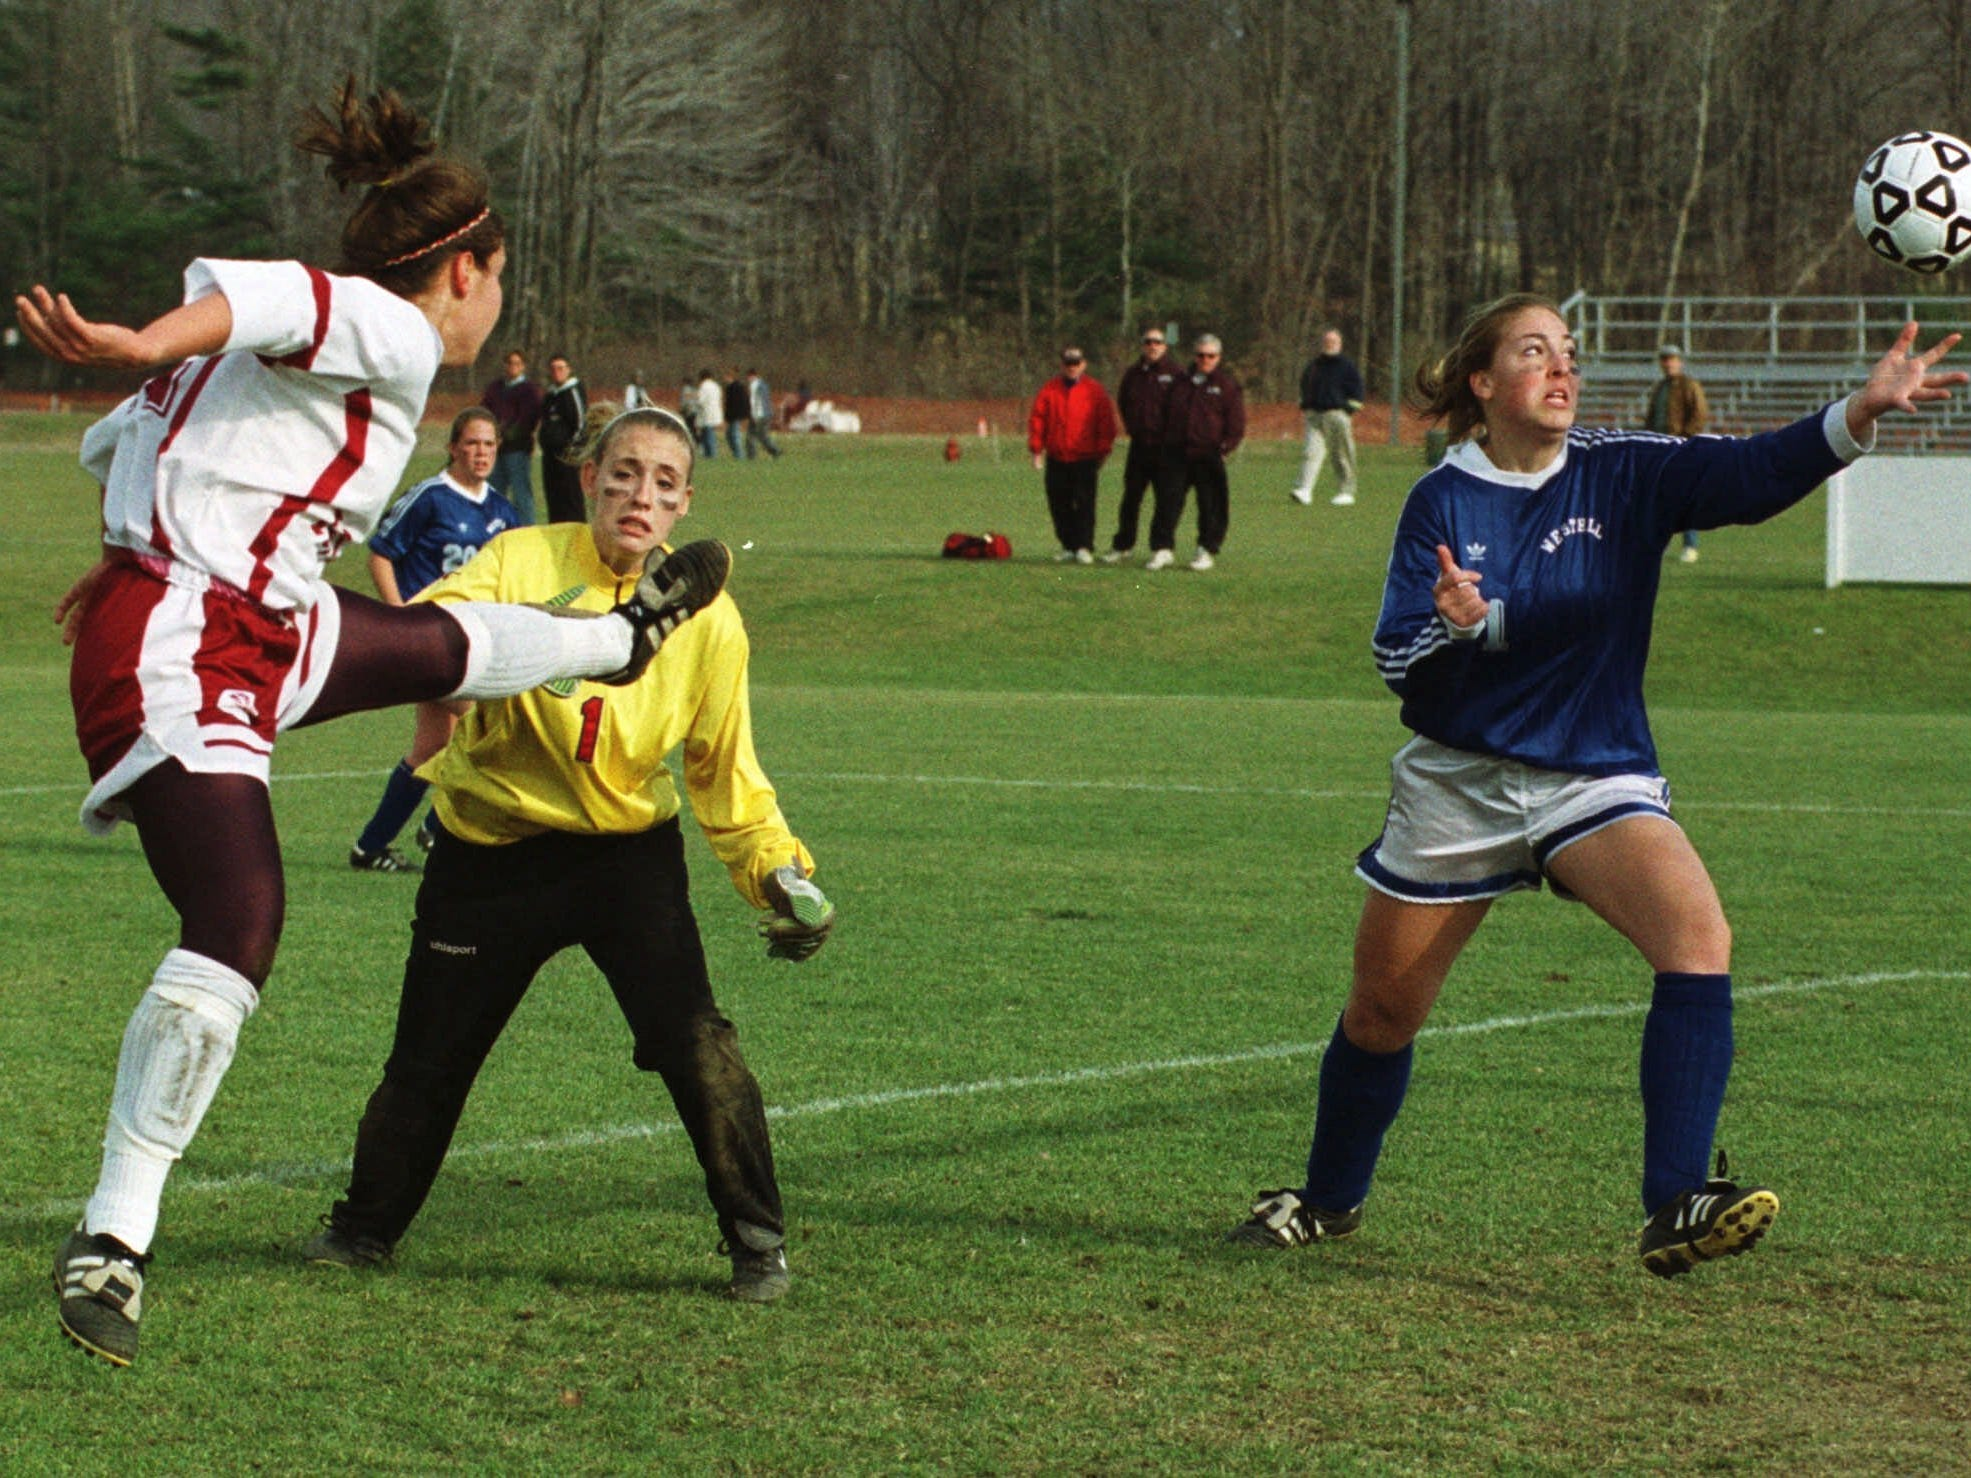 Lindsay Bach, left, shoots and scores as a Westhill defender reaches out to block her goal during the first half of the state Class B finals at Oneonta on Nov. 20, 1999.